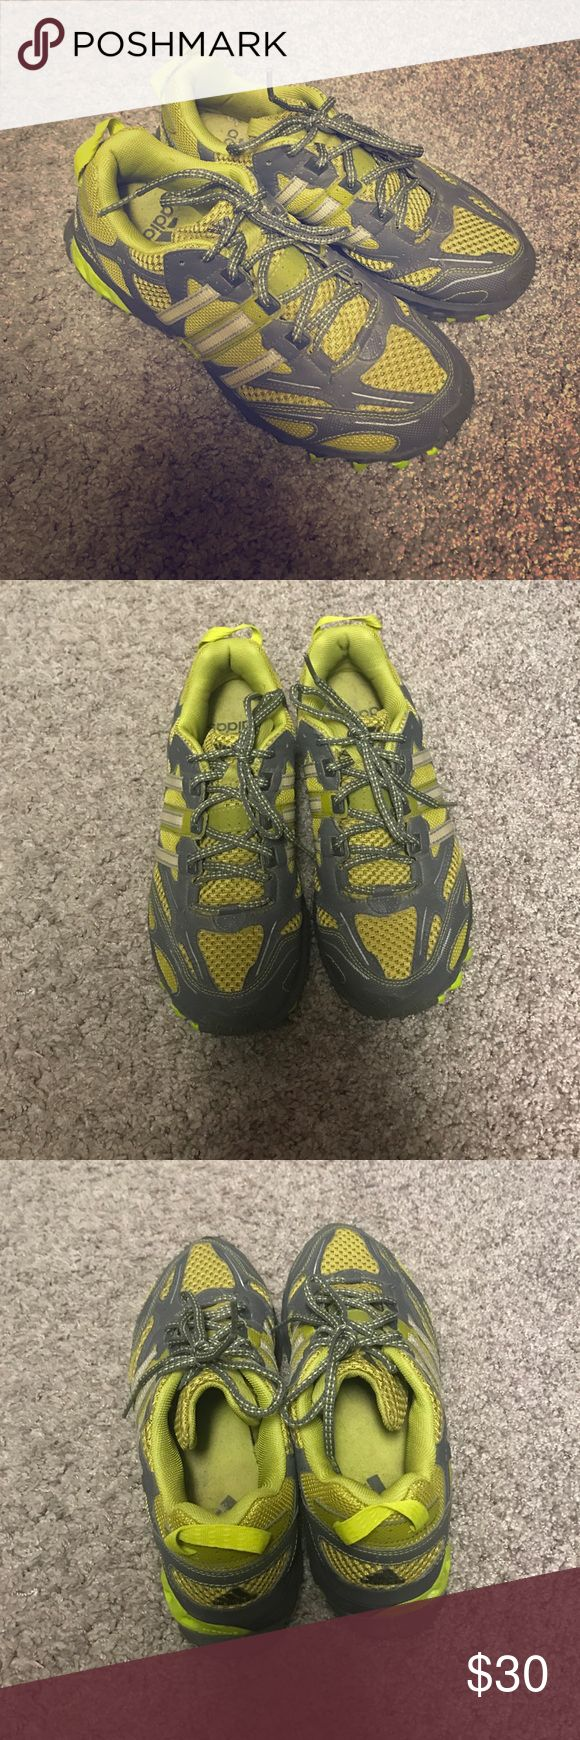 Adidas Trail Running Shoes Adidas Trail Running Shoes. Great for gripping the trail. Gently used. Adidas Shoes Athletic Shoes